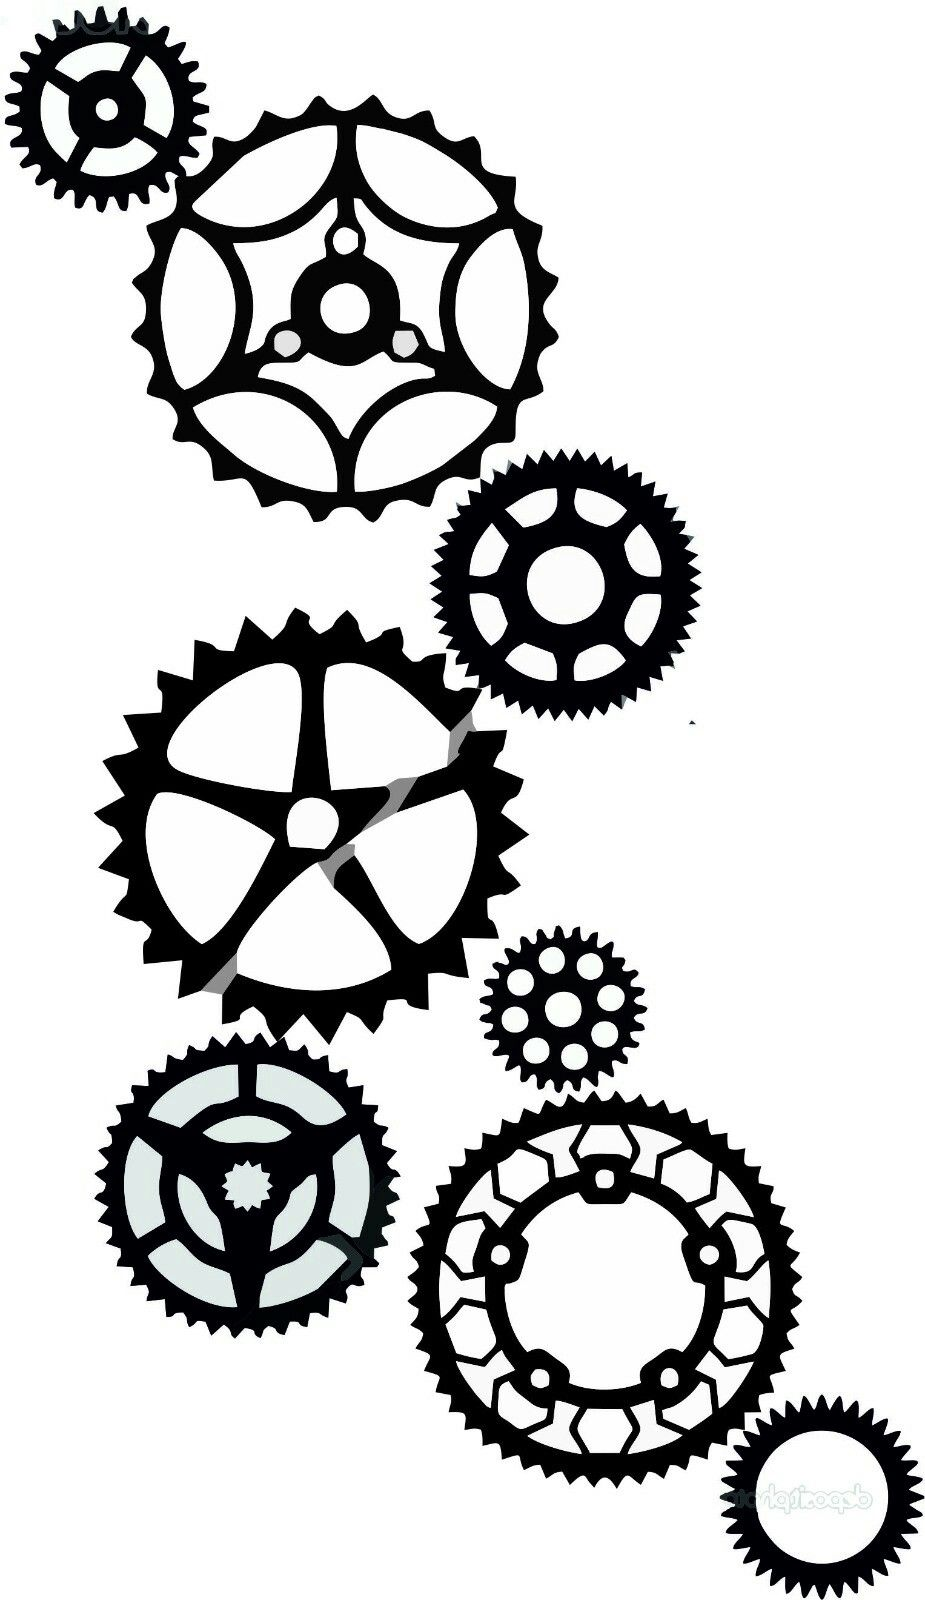 Gear Tattoo Tattoo For Meyouchanical Engineer Mechanical Engineer Tatto Mechanical Engineer Tattoo Design Idea If W Gear Tattoo Mechanical Art Bicycle Drawing